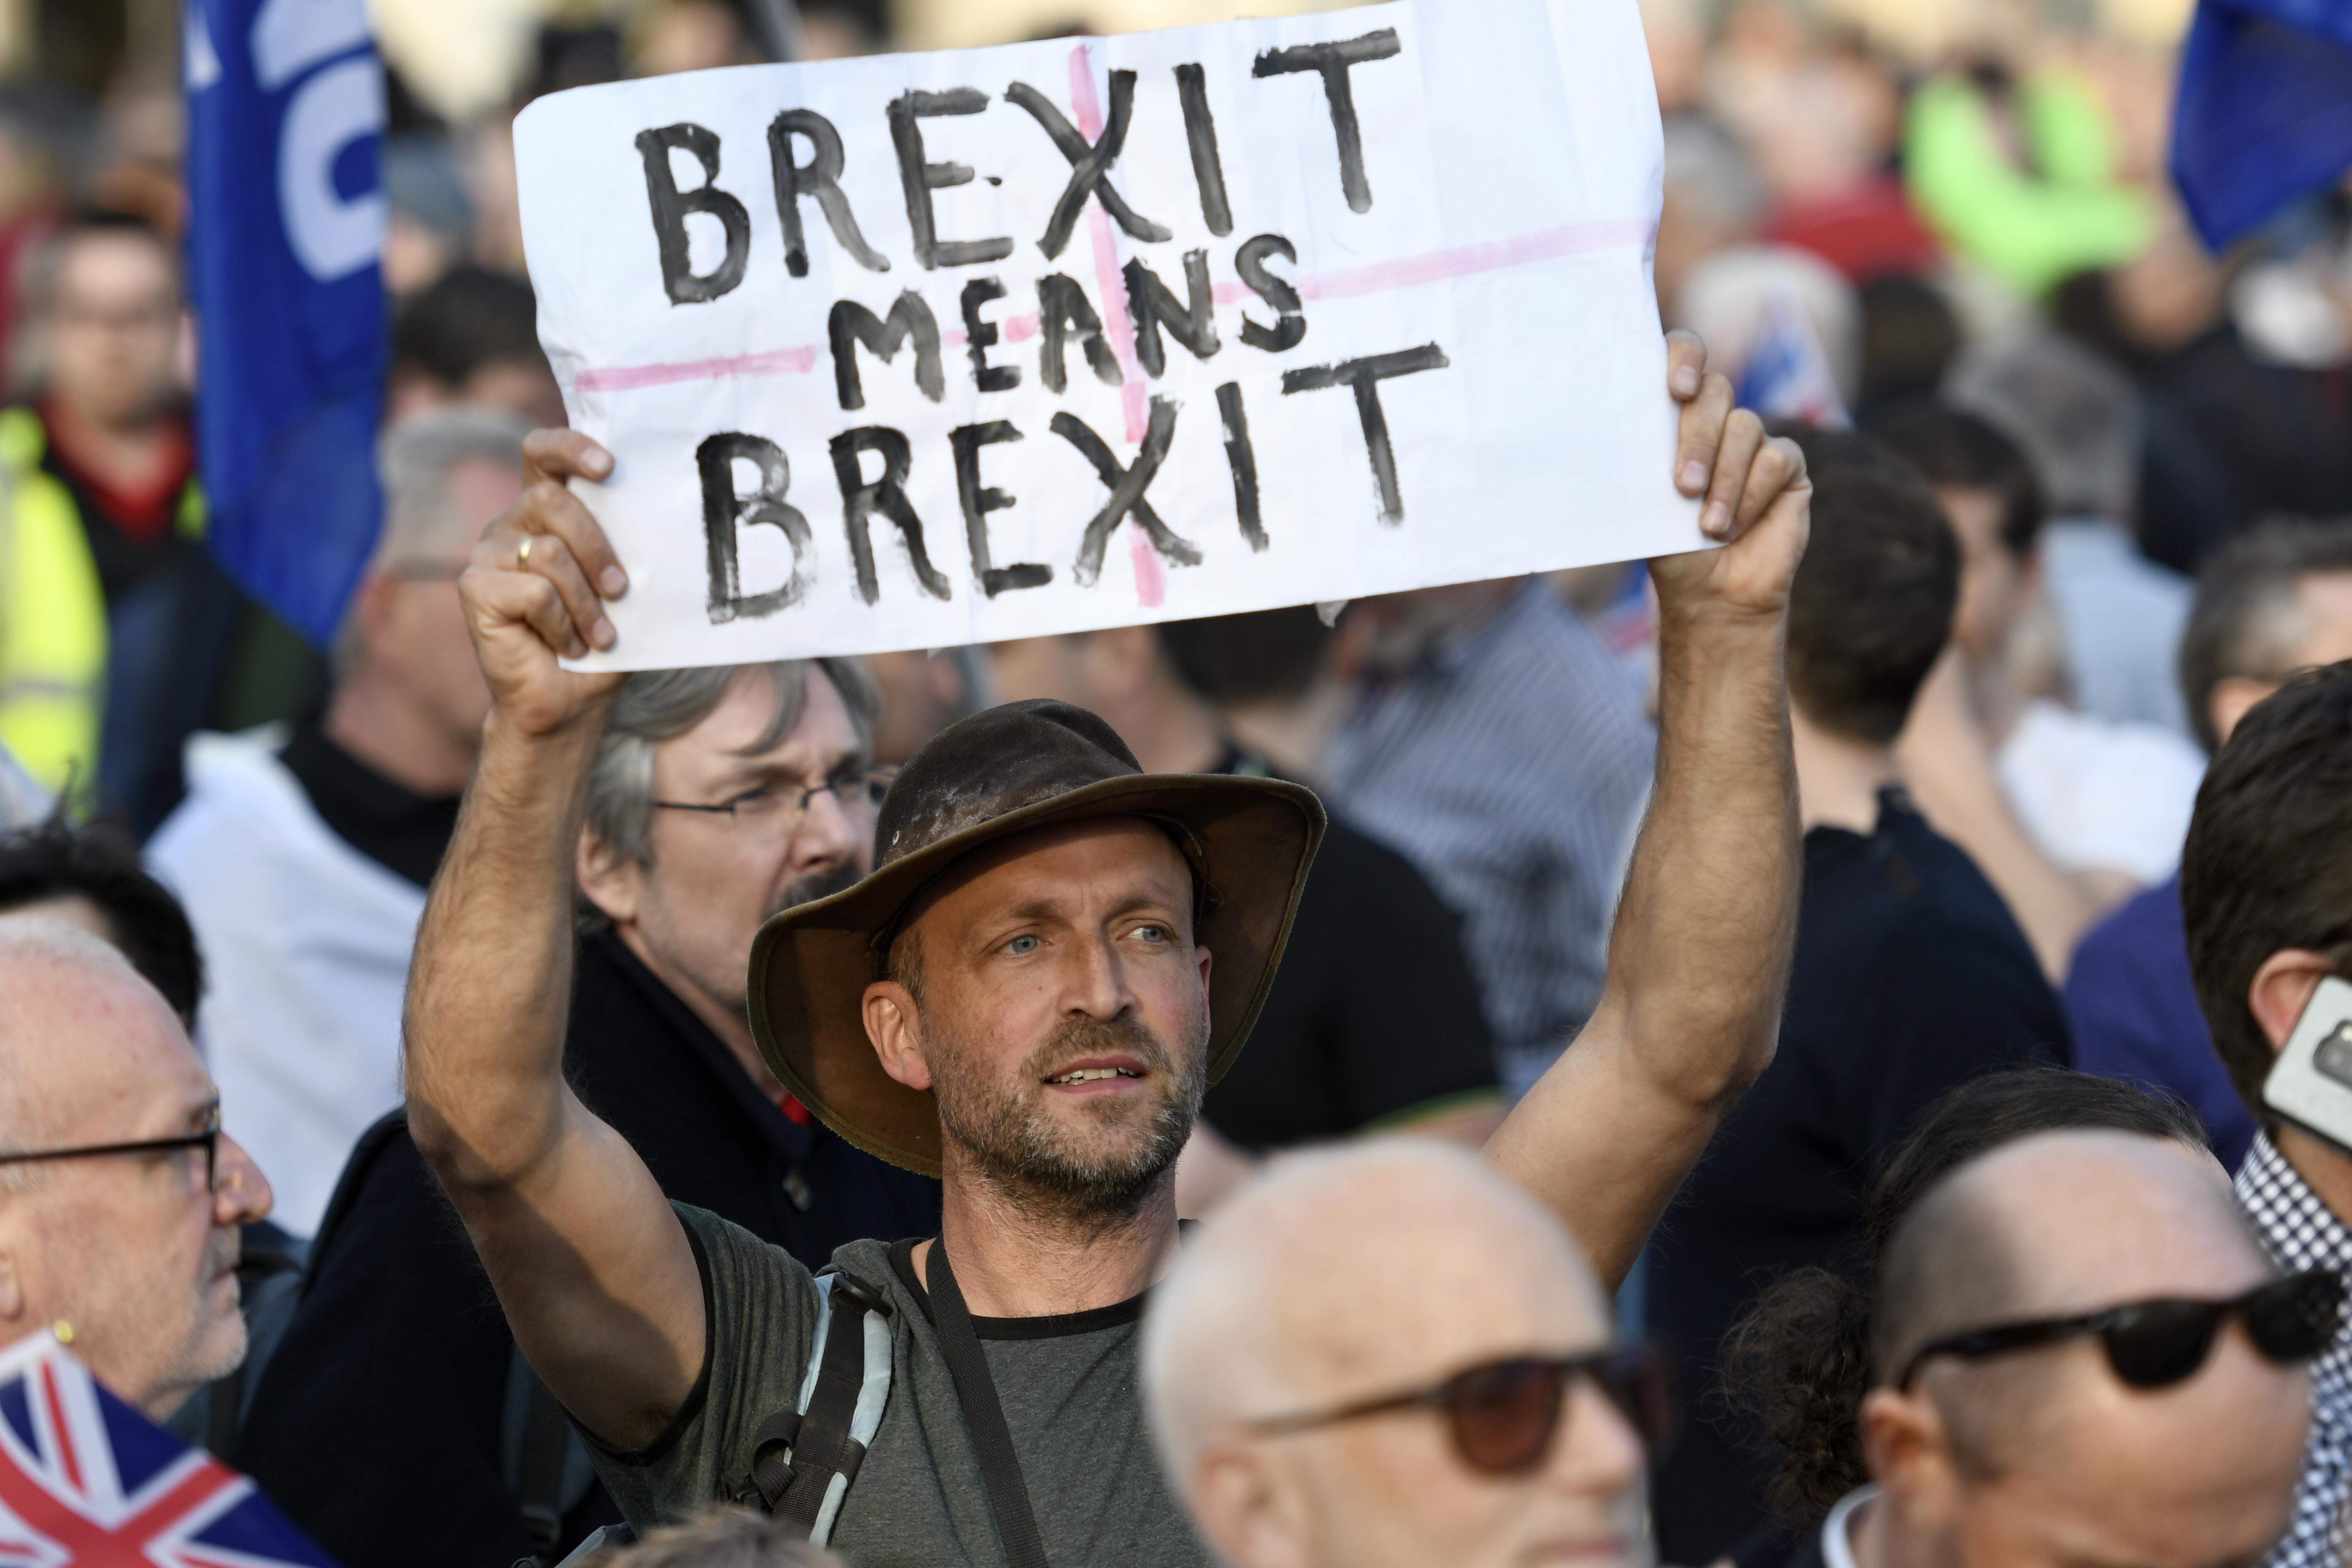 "A protester seen holding a placard that says �Brexit means Brexit"" during the Leave means leave rally in London. A Leave means leave pro Brexit march begun on March 16 in Sunderland, UK and ended with a rally in Parliament Square on March 29 in London, same day that UK has been scheduled to leave the European Union. Pro Brexit protesters gathered at Parliament Square to demand from the government to deliver what was promised and leave the European Union without a deal. Nigel Farage and Tommy Robinson were seen giving speeches to their supporters in different stages during the pro Brexit protest. (Photo by Andres Pantoja / SOPA Images/Sipa USA)"